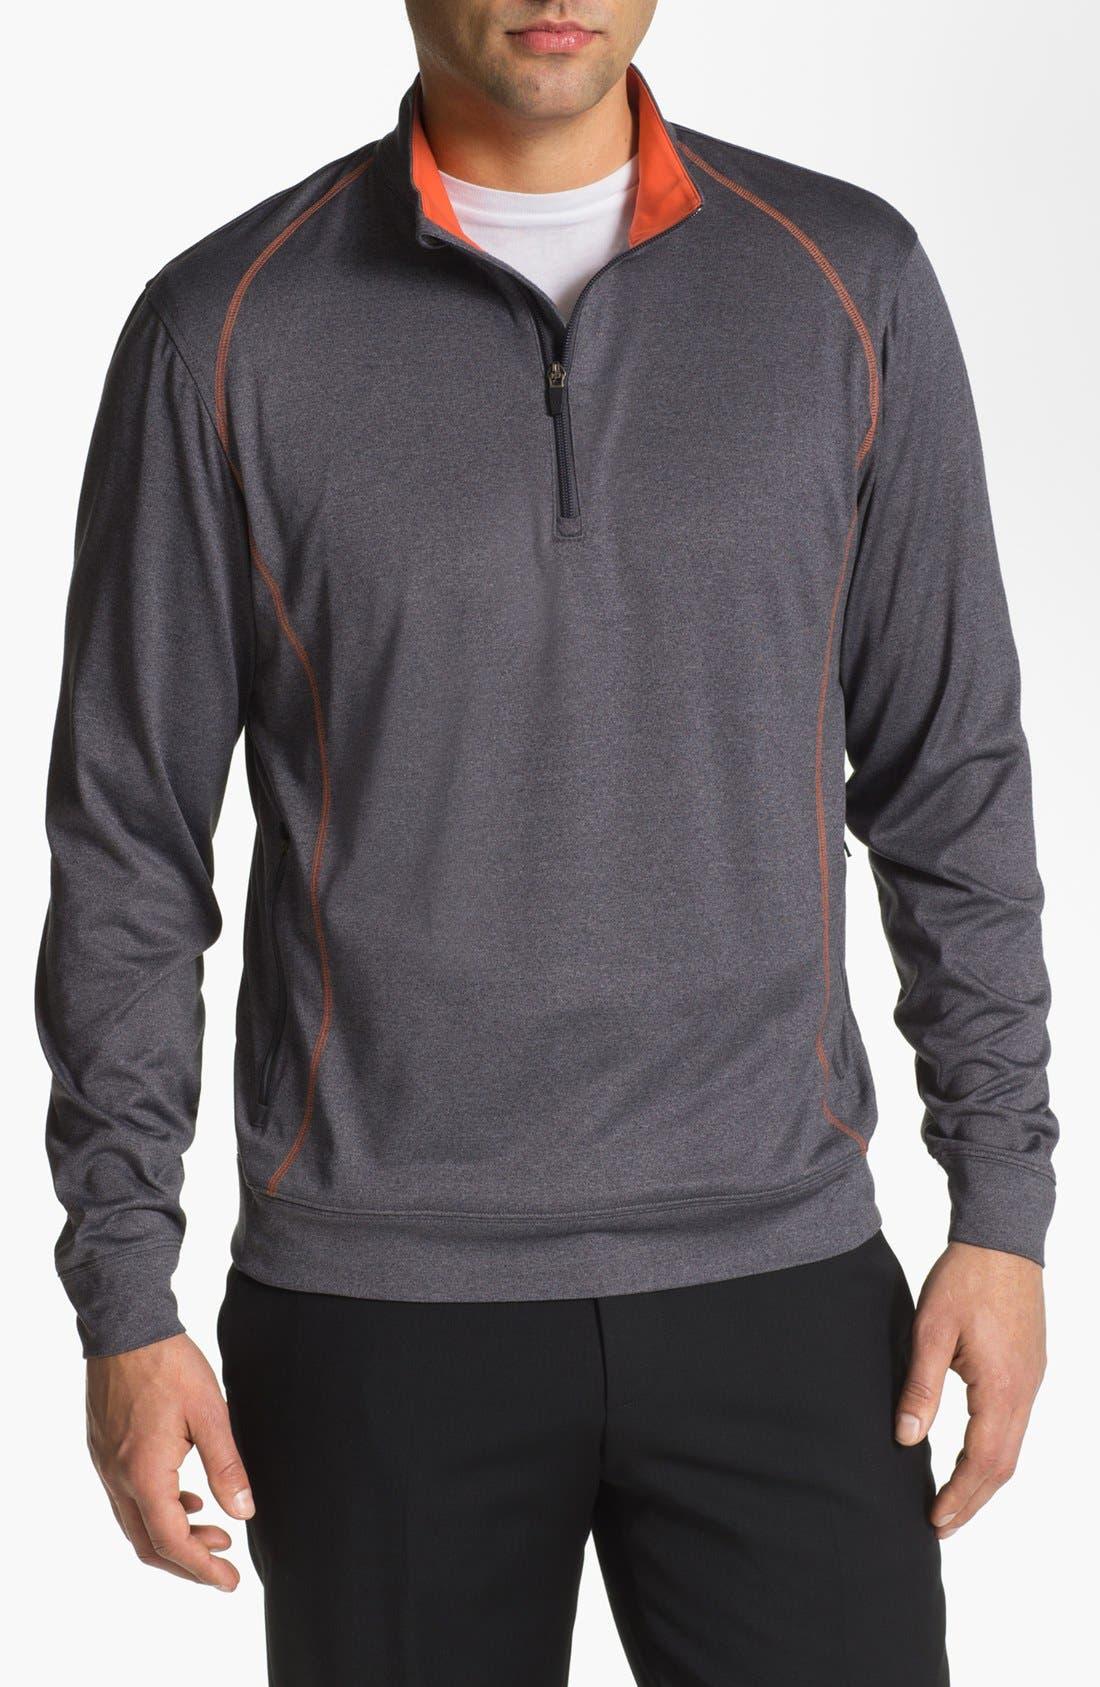 Main Image - Cutter & Buck 'Front Nines' DryTec Quarter Zip Fleece